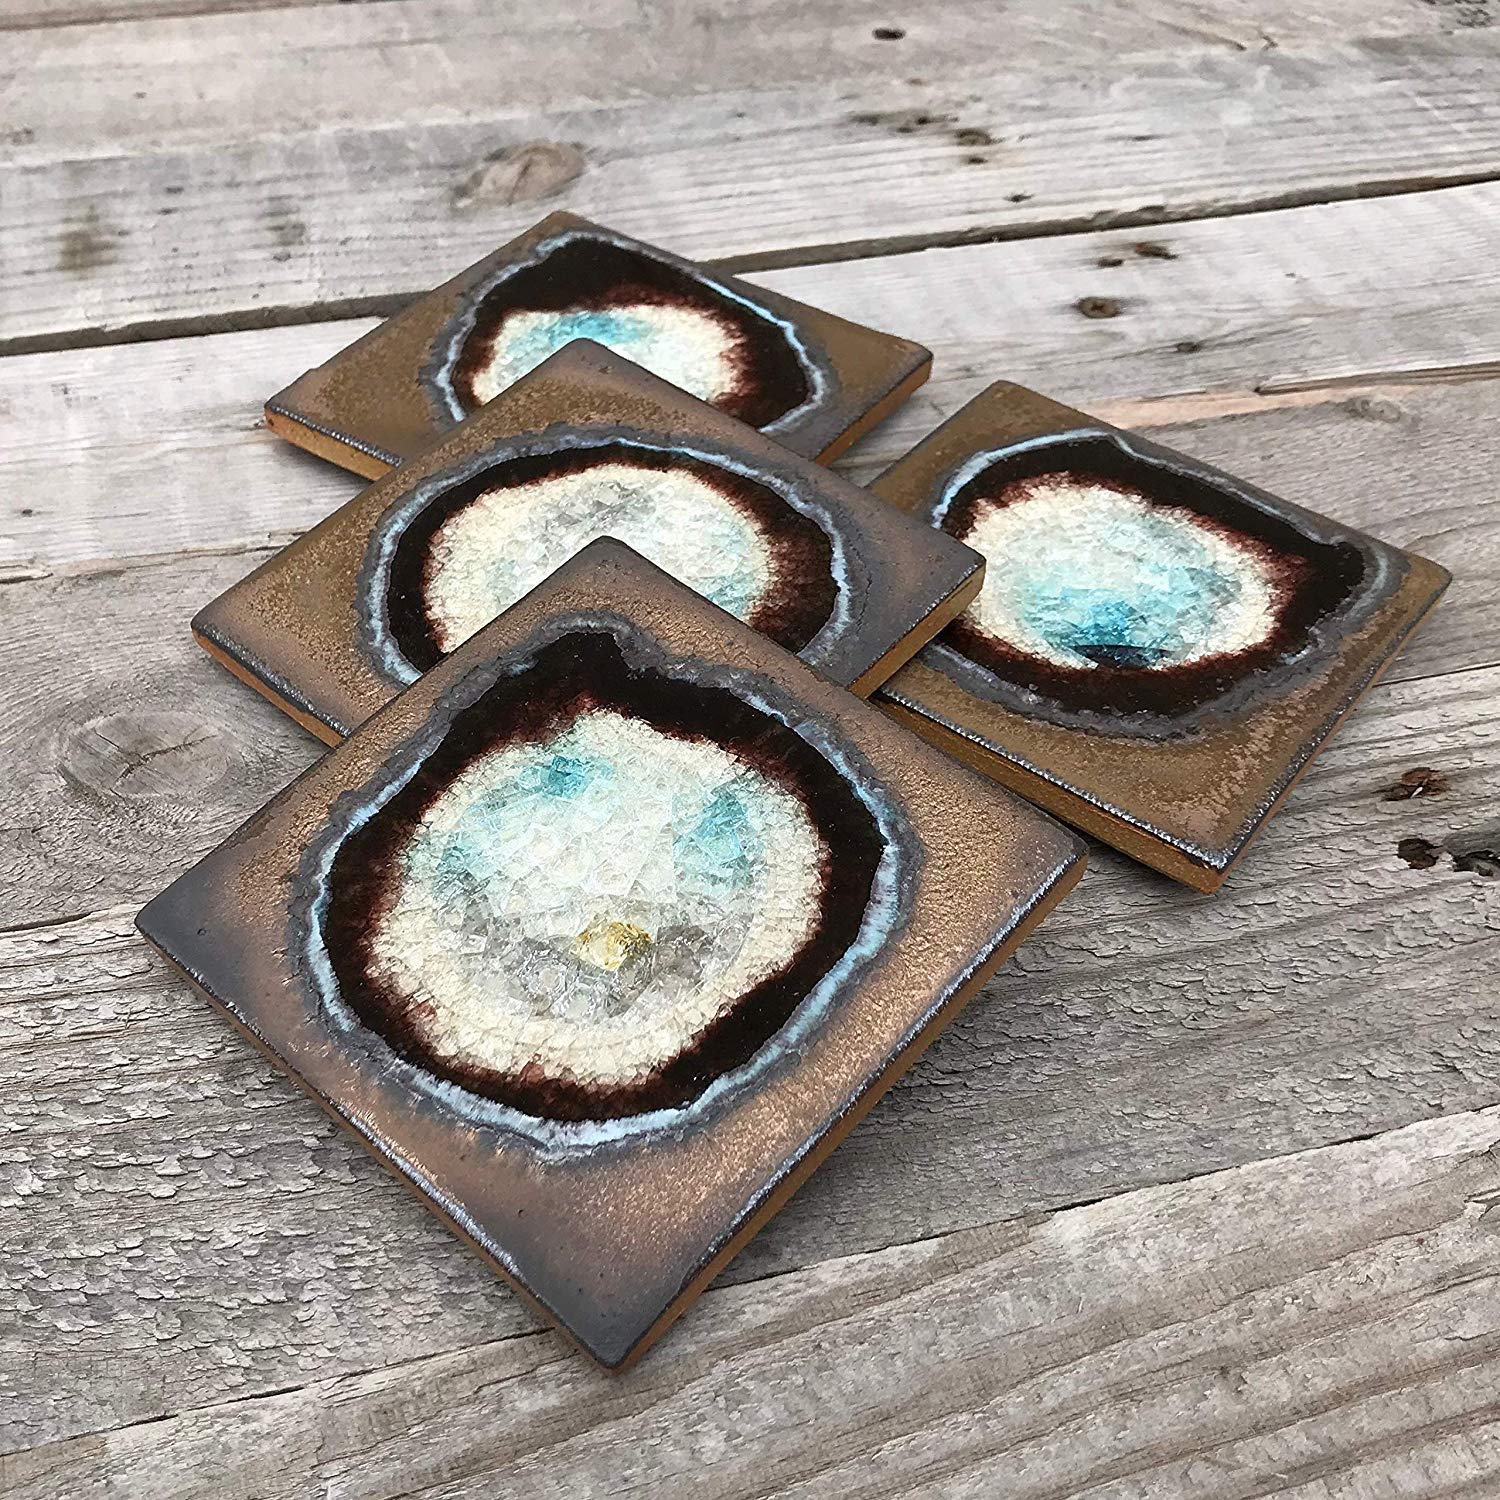 Geode Crackle Coaster Set of 4 in BRONZE: Geode Coaster, Crackle Coaster, Fused Glass Coaster, Crackle Glass Coaster, Agate Coaster, Ceramic Coaster, Dock 6 Pottery Coaster